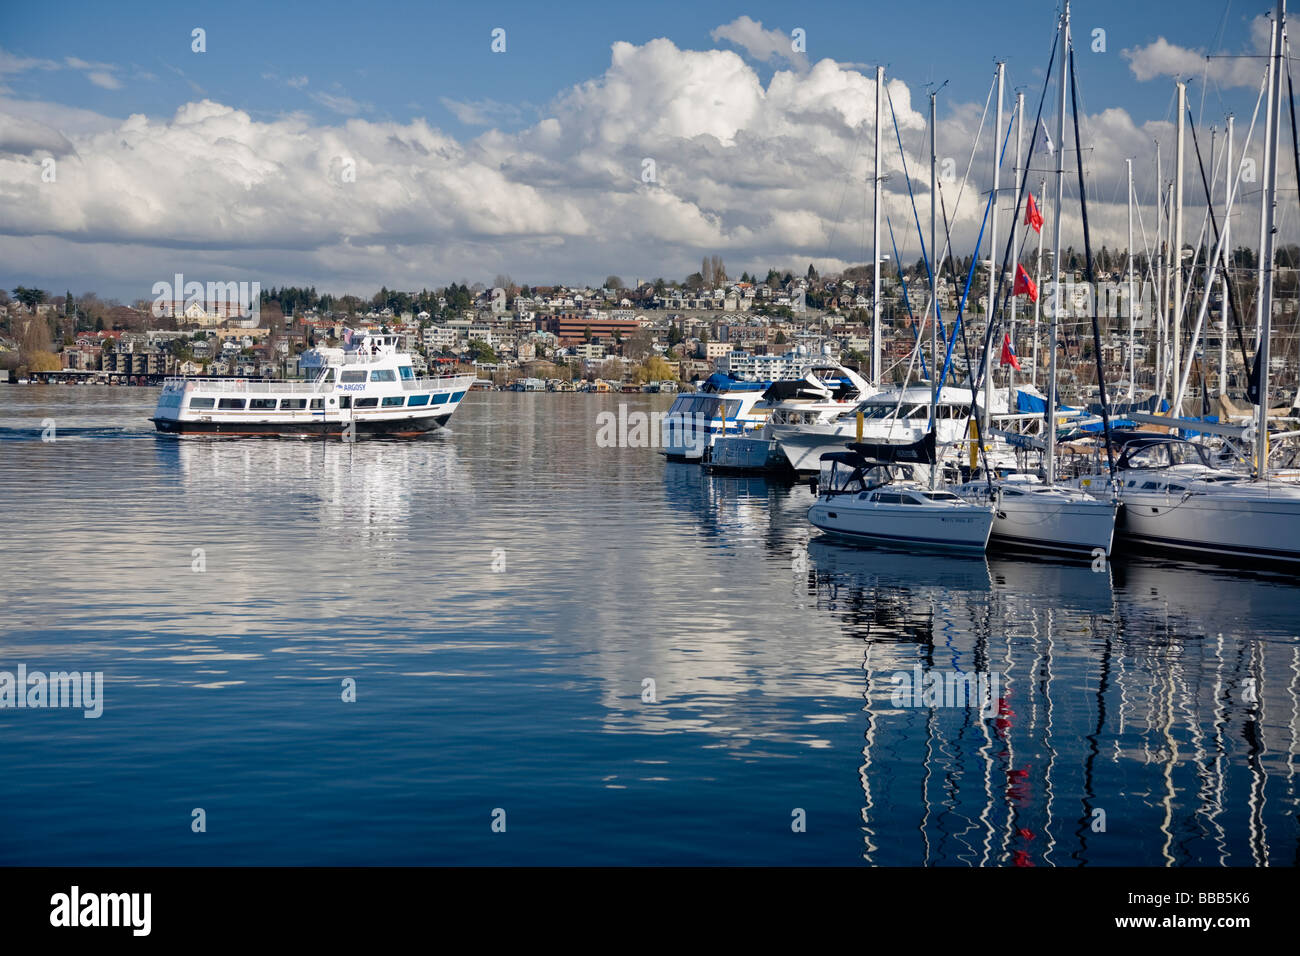 Seattle, WA: Clouds over First Hill and Eastlake neighborhoods with Argosy tour boat on Lake Union - Stock Image